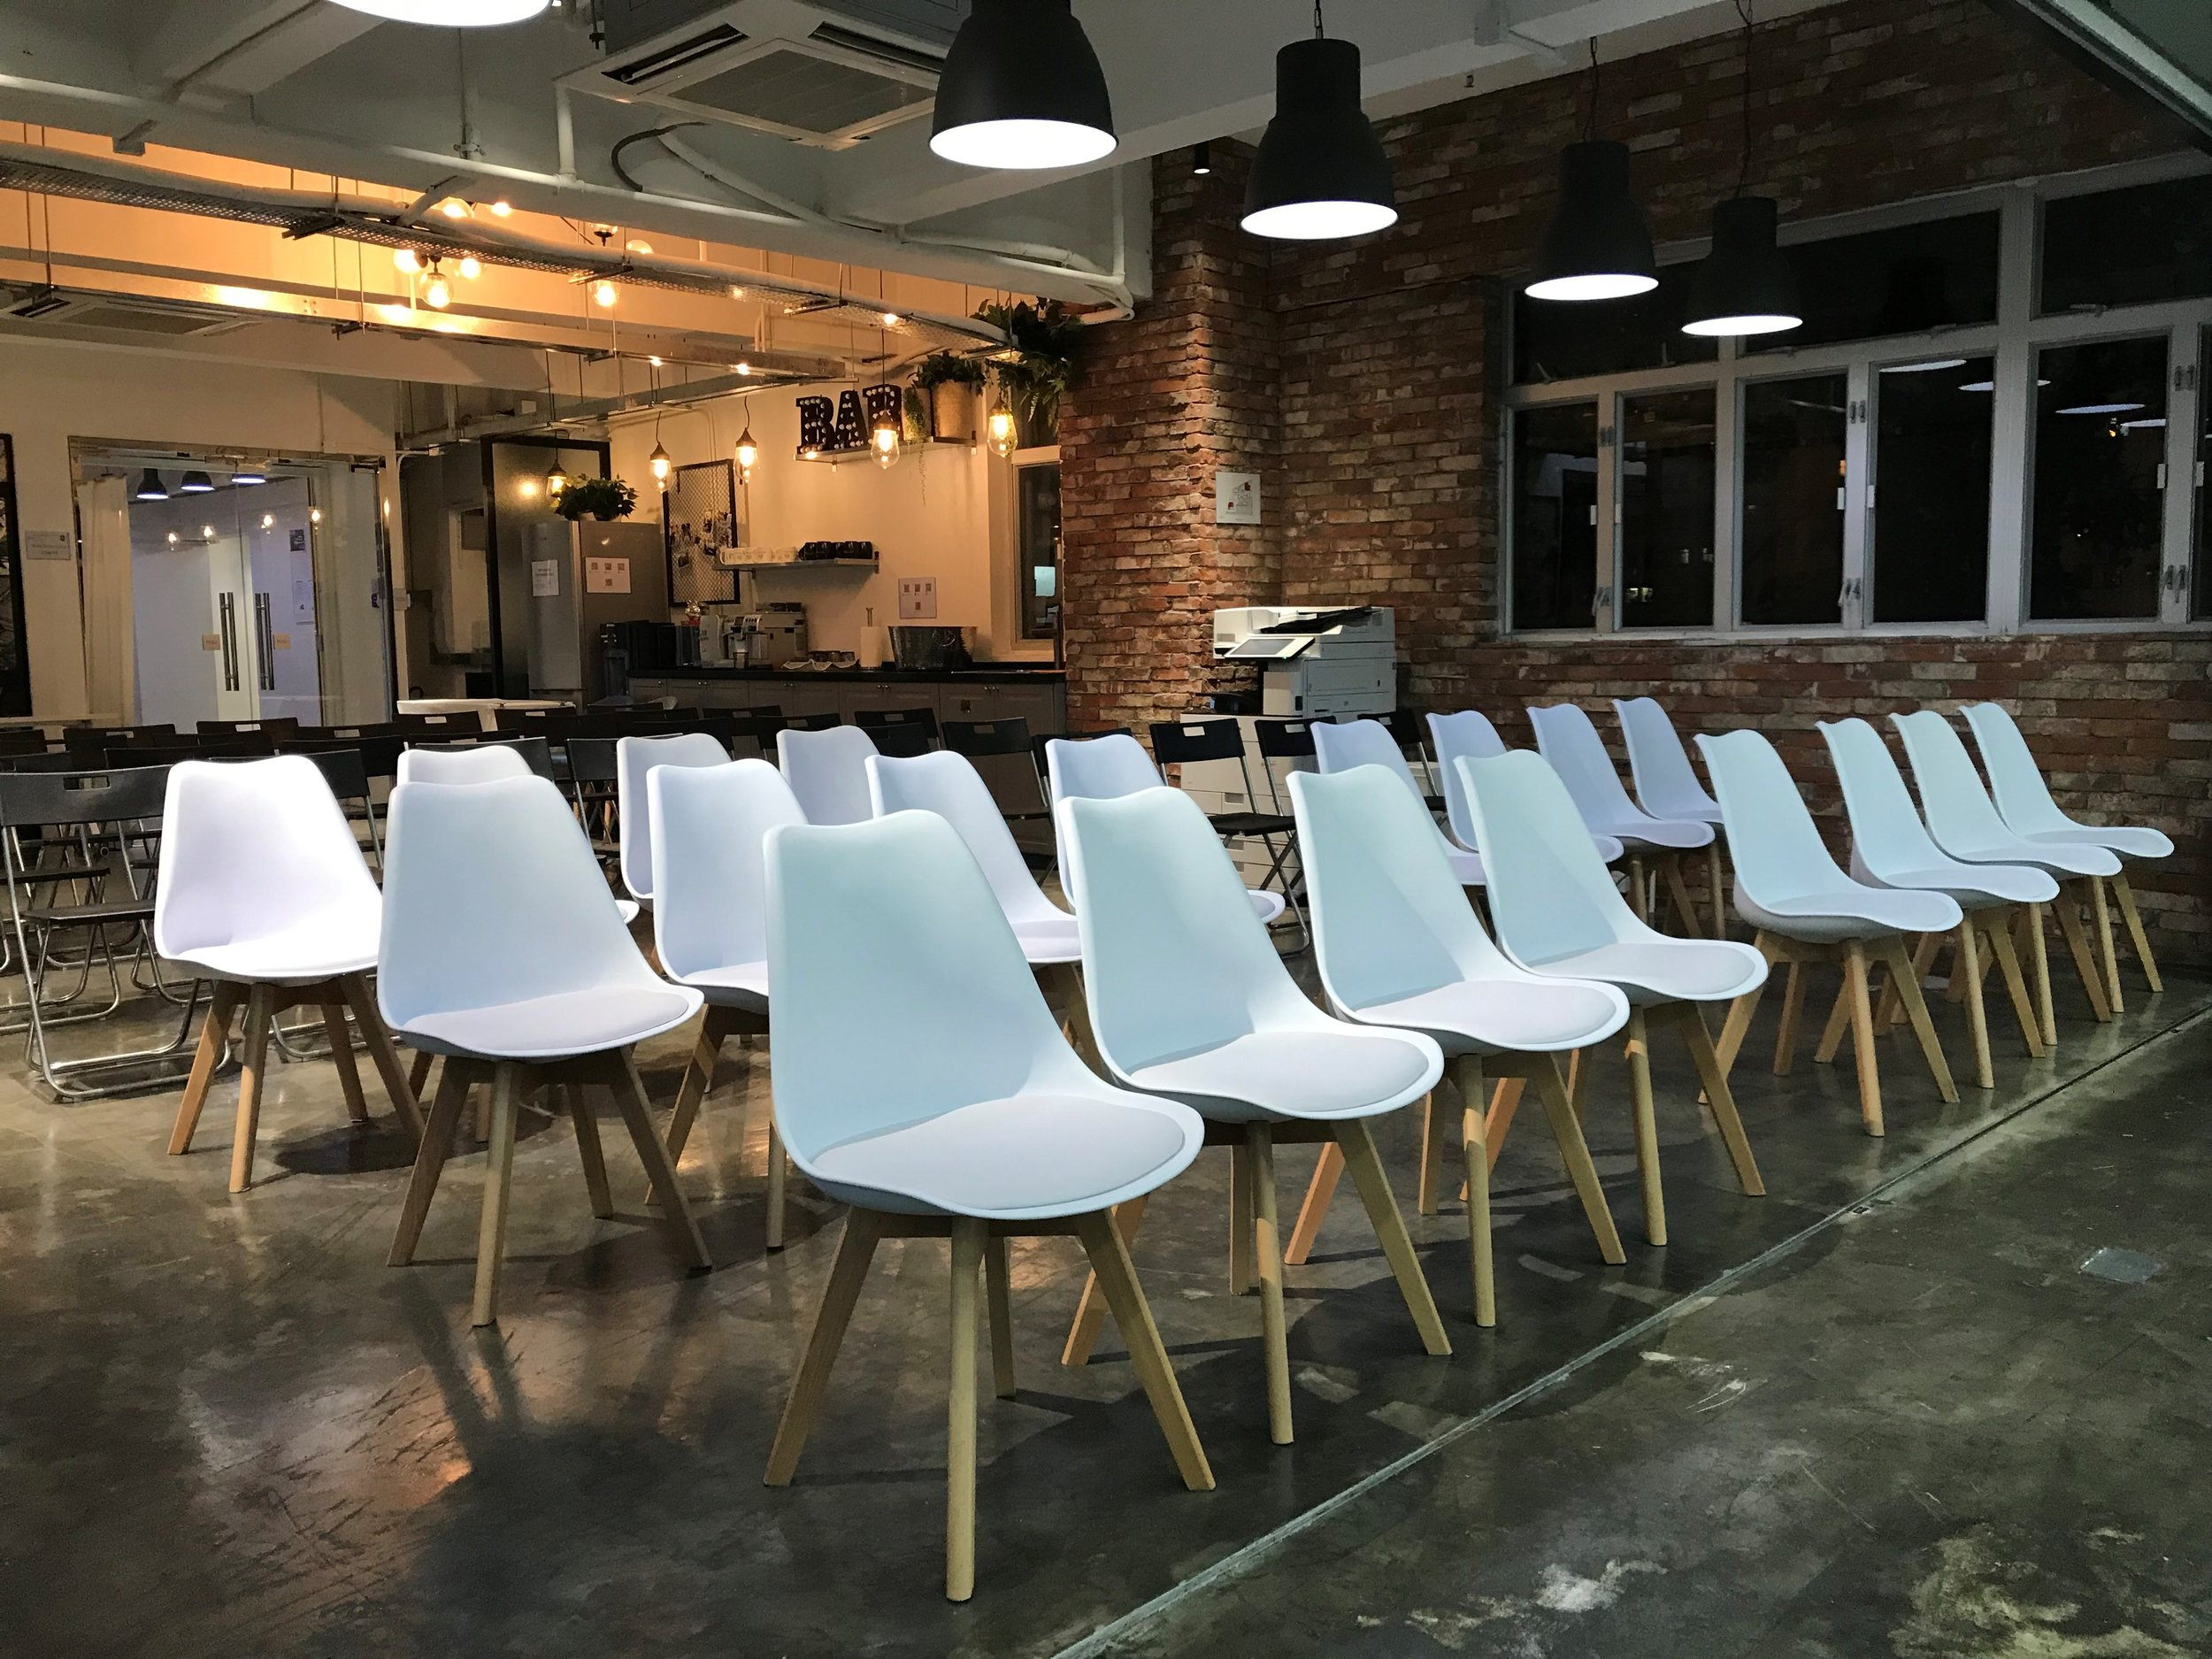 Event / Workshop Venue   from HK$300/hour